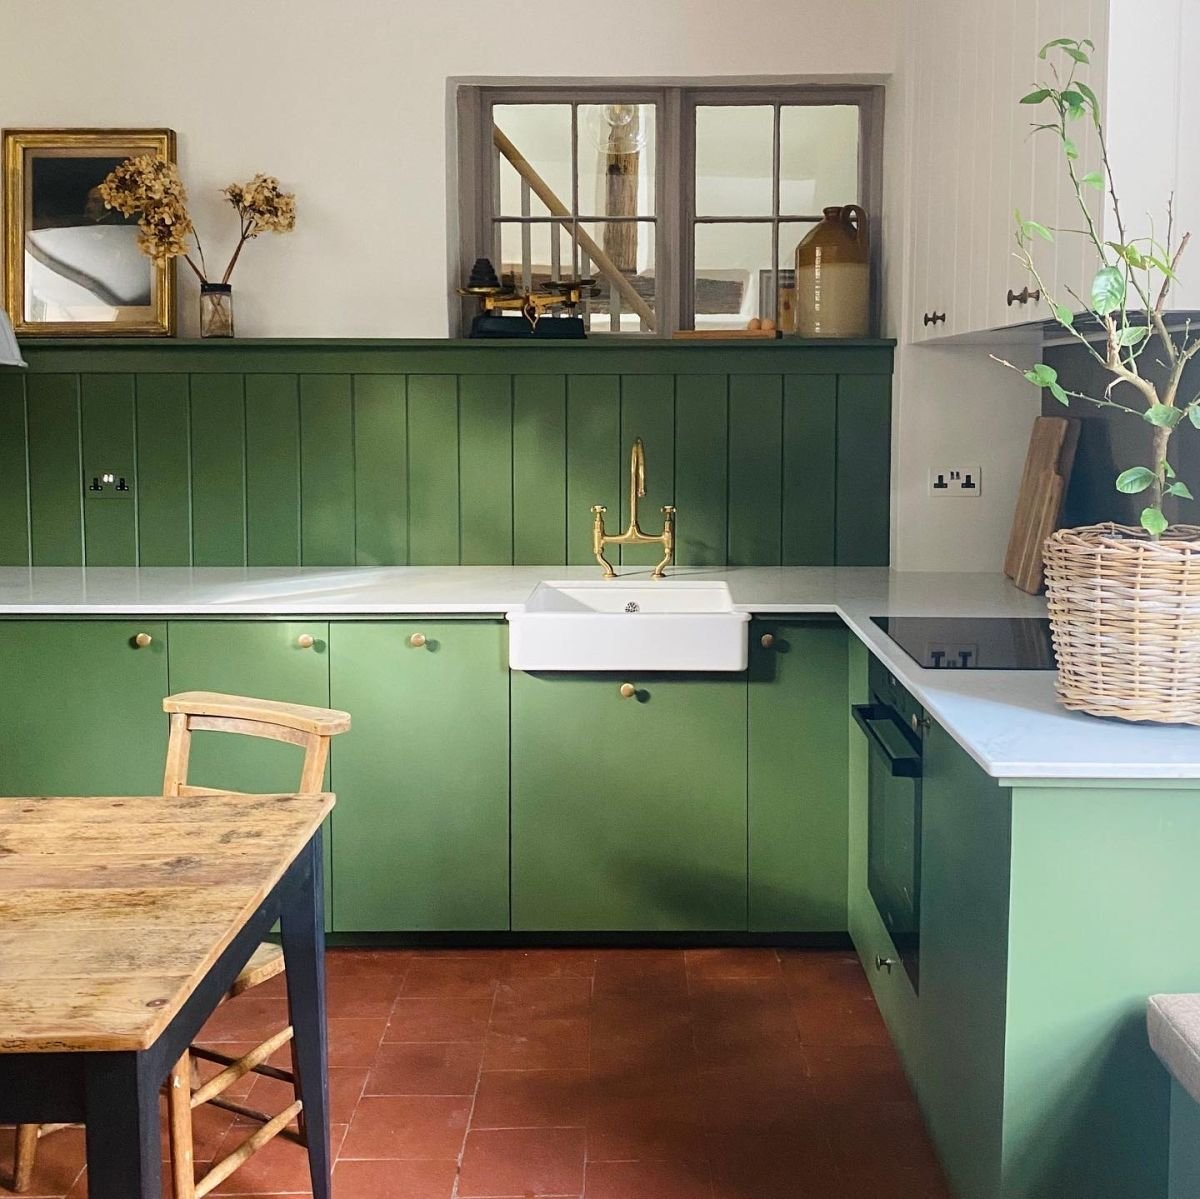 The 10 best IKEA kitchen hacks for a chic space on a budget